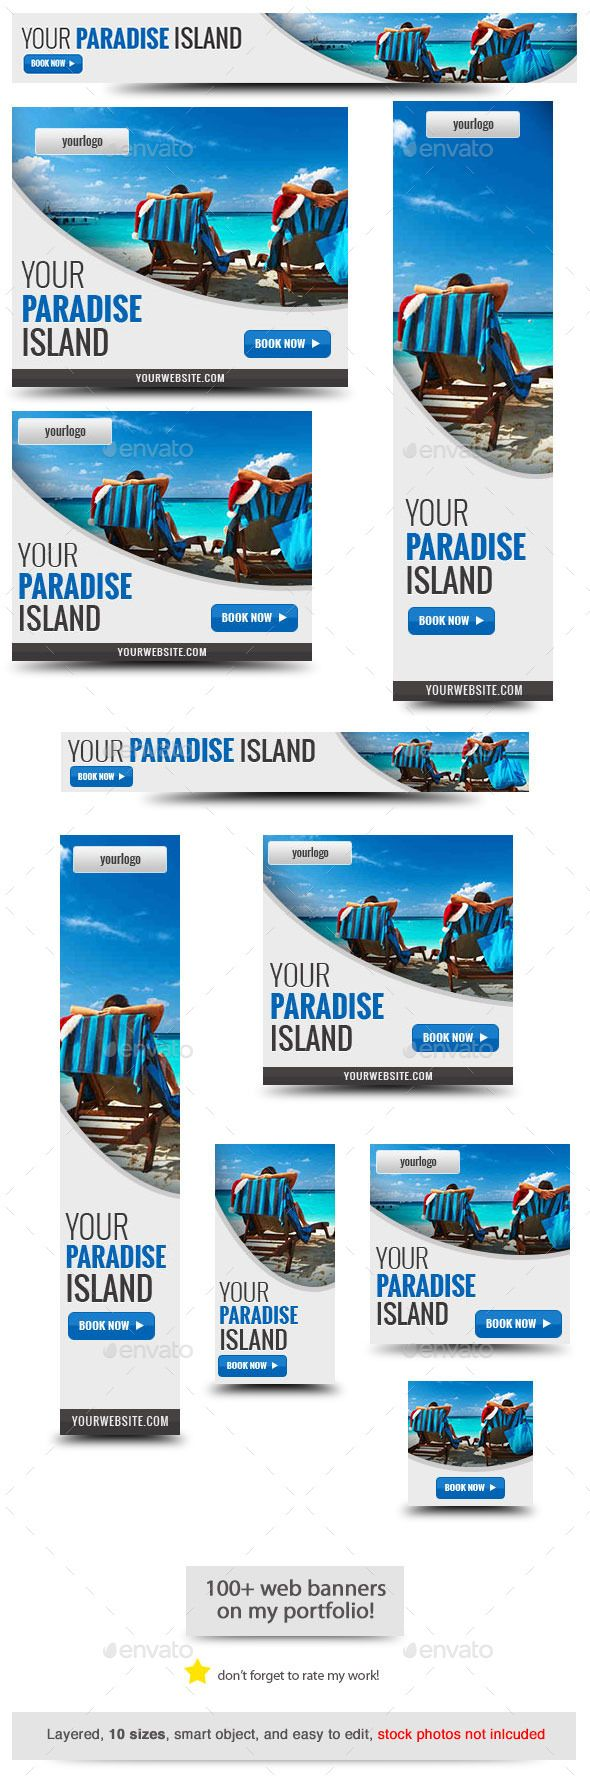 Your Paradise Web Banner Template PSD | Download: http://graphicriver.net/item/your-paradise-web-banner-template/10150083?ref=ksioks